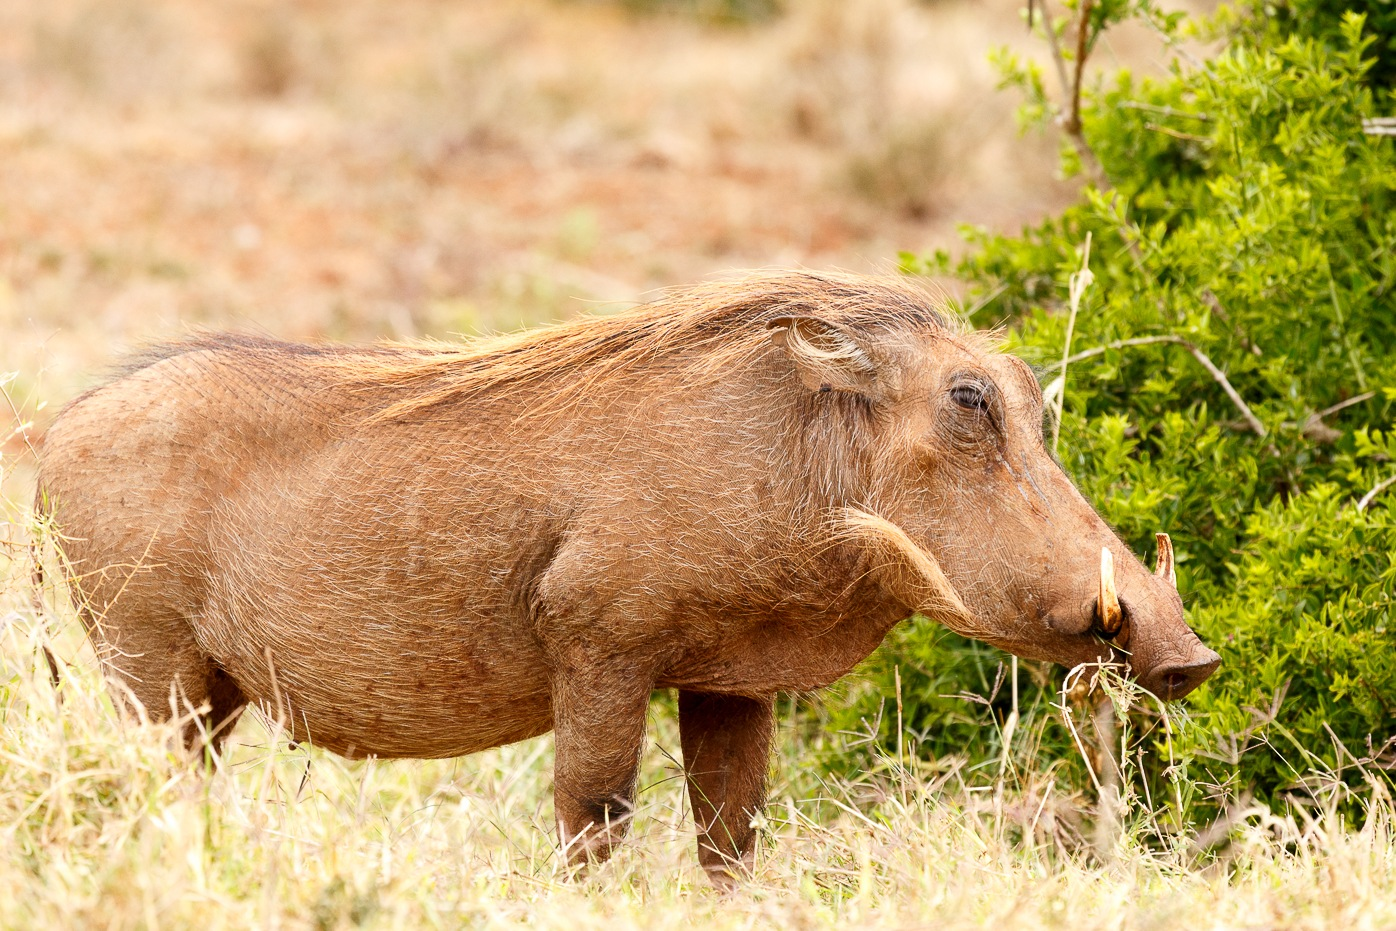 Warthog standing and chilling by Charissa de Scande Lotter